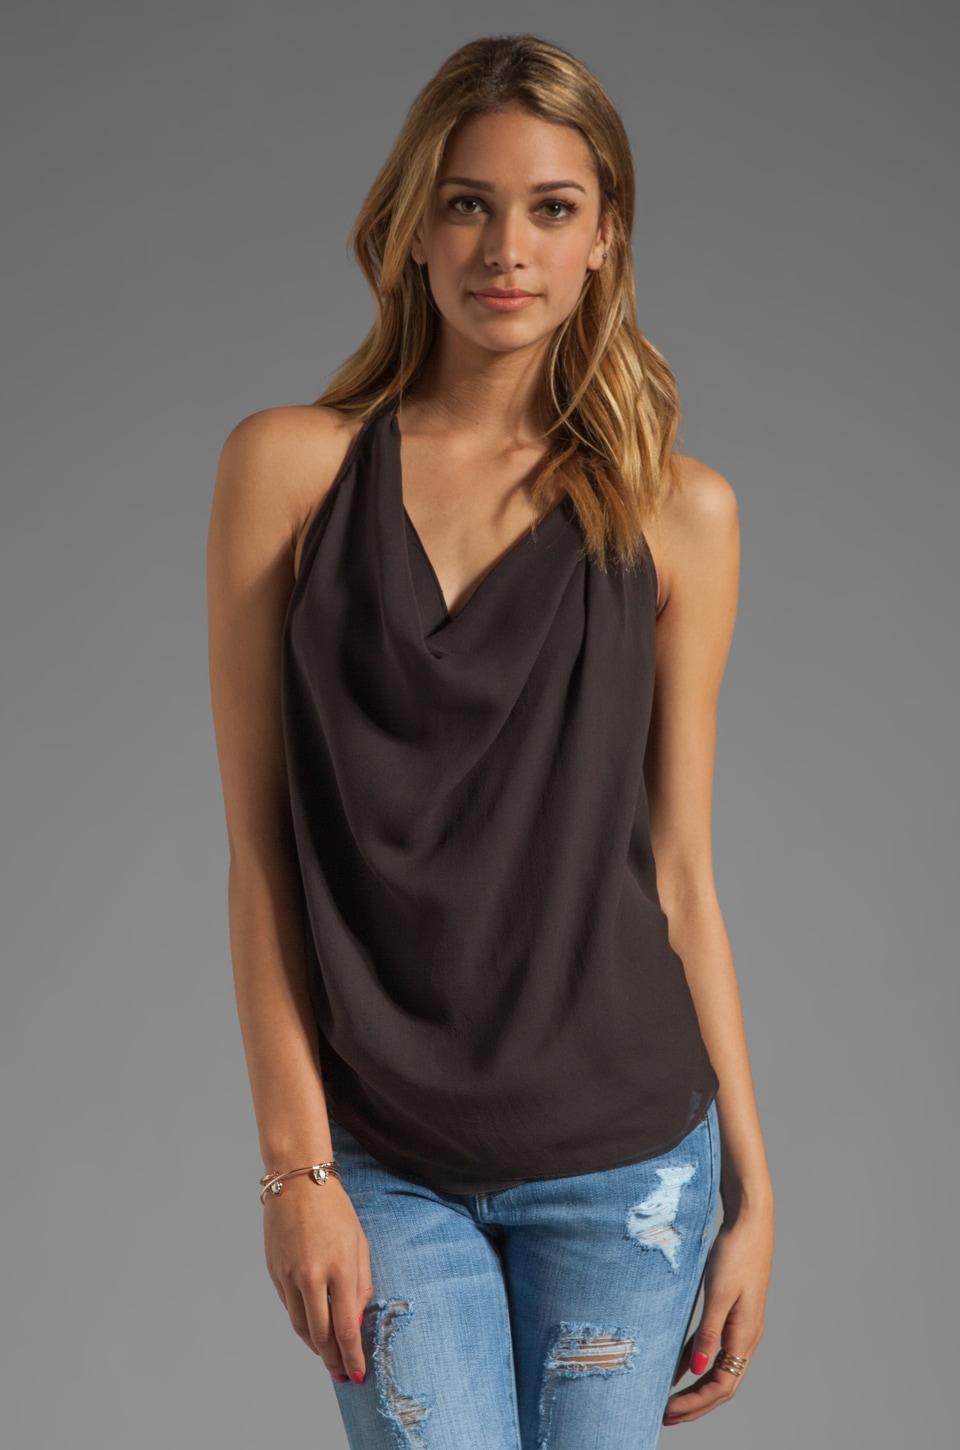 Haute Hippie Criss Cross Back Top in Asphalt